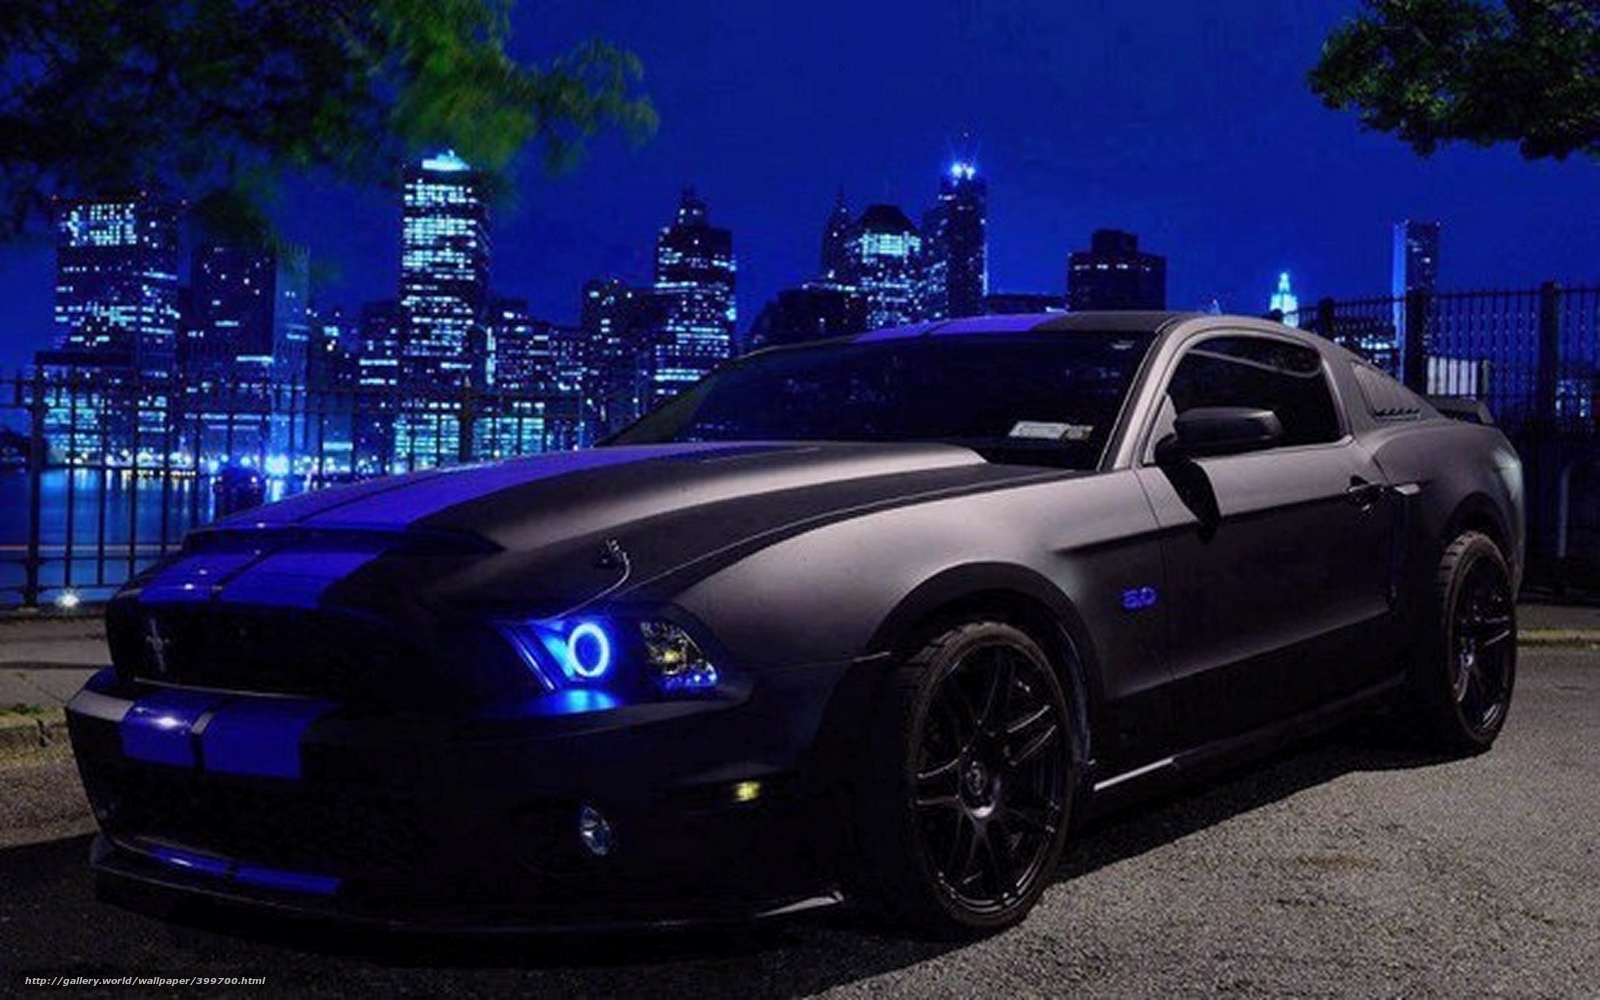 Download wallpaper Mustang black Tuning cars desktop wallpaper 1600x1000